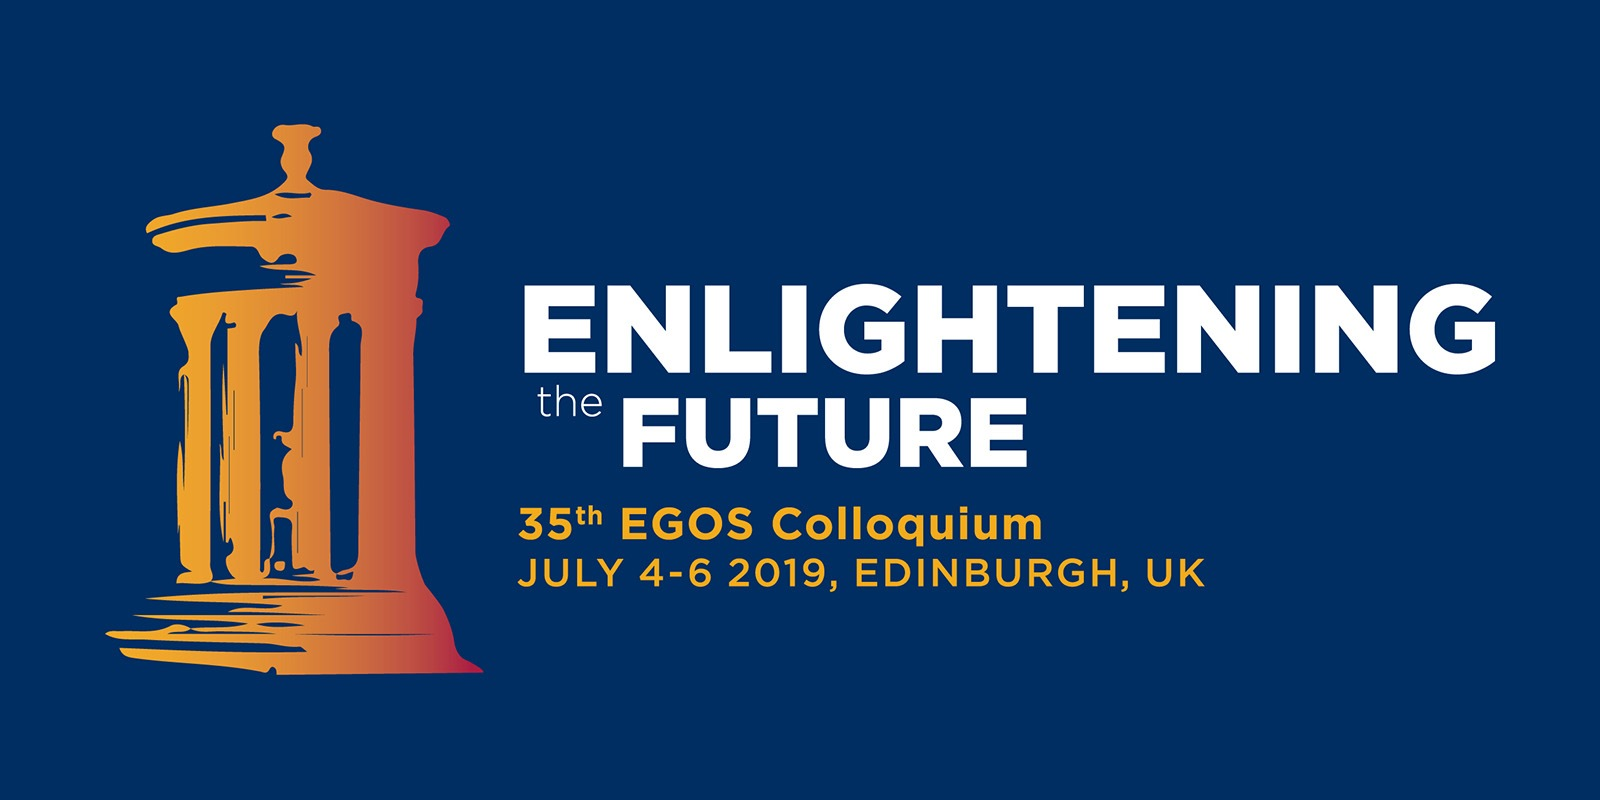 Enlightening the Future - 35th EGOS Colloquium, July 4-6 2019, Edinburgh, UK